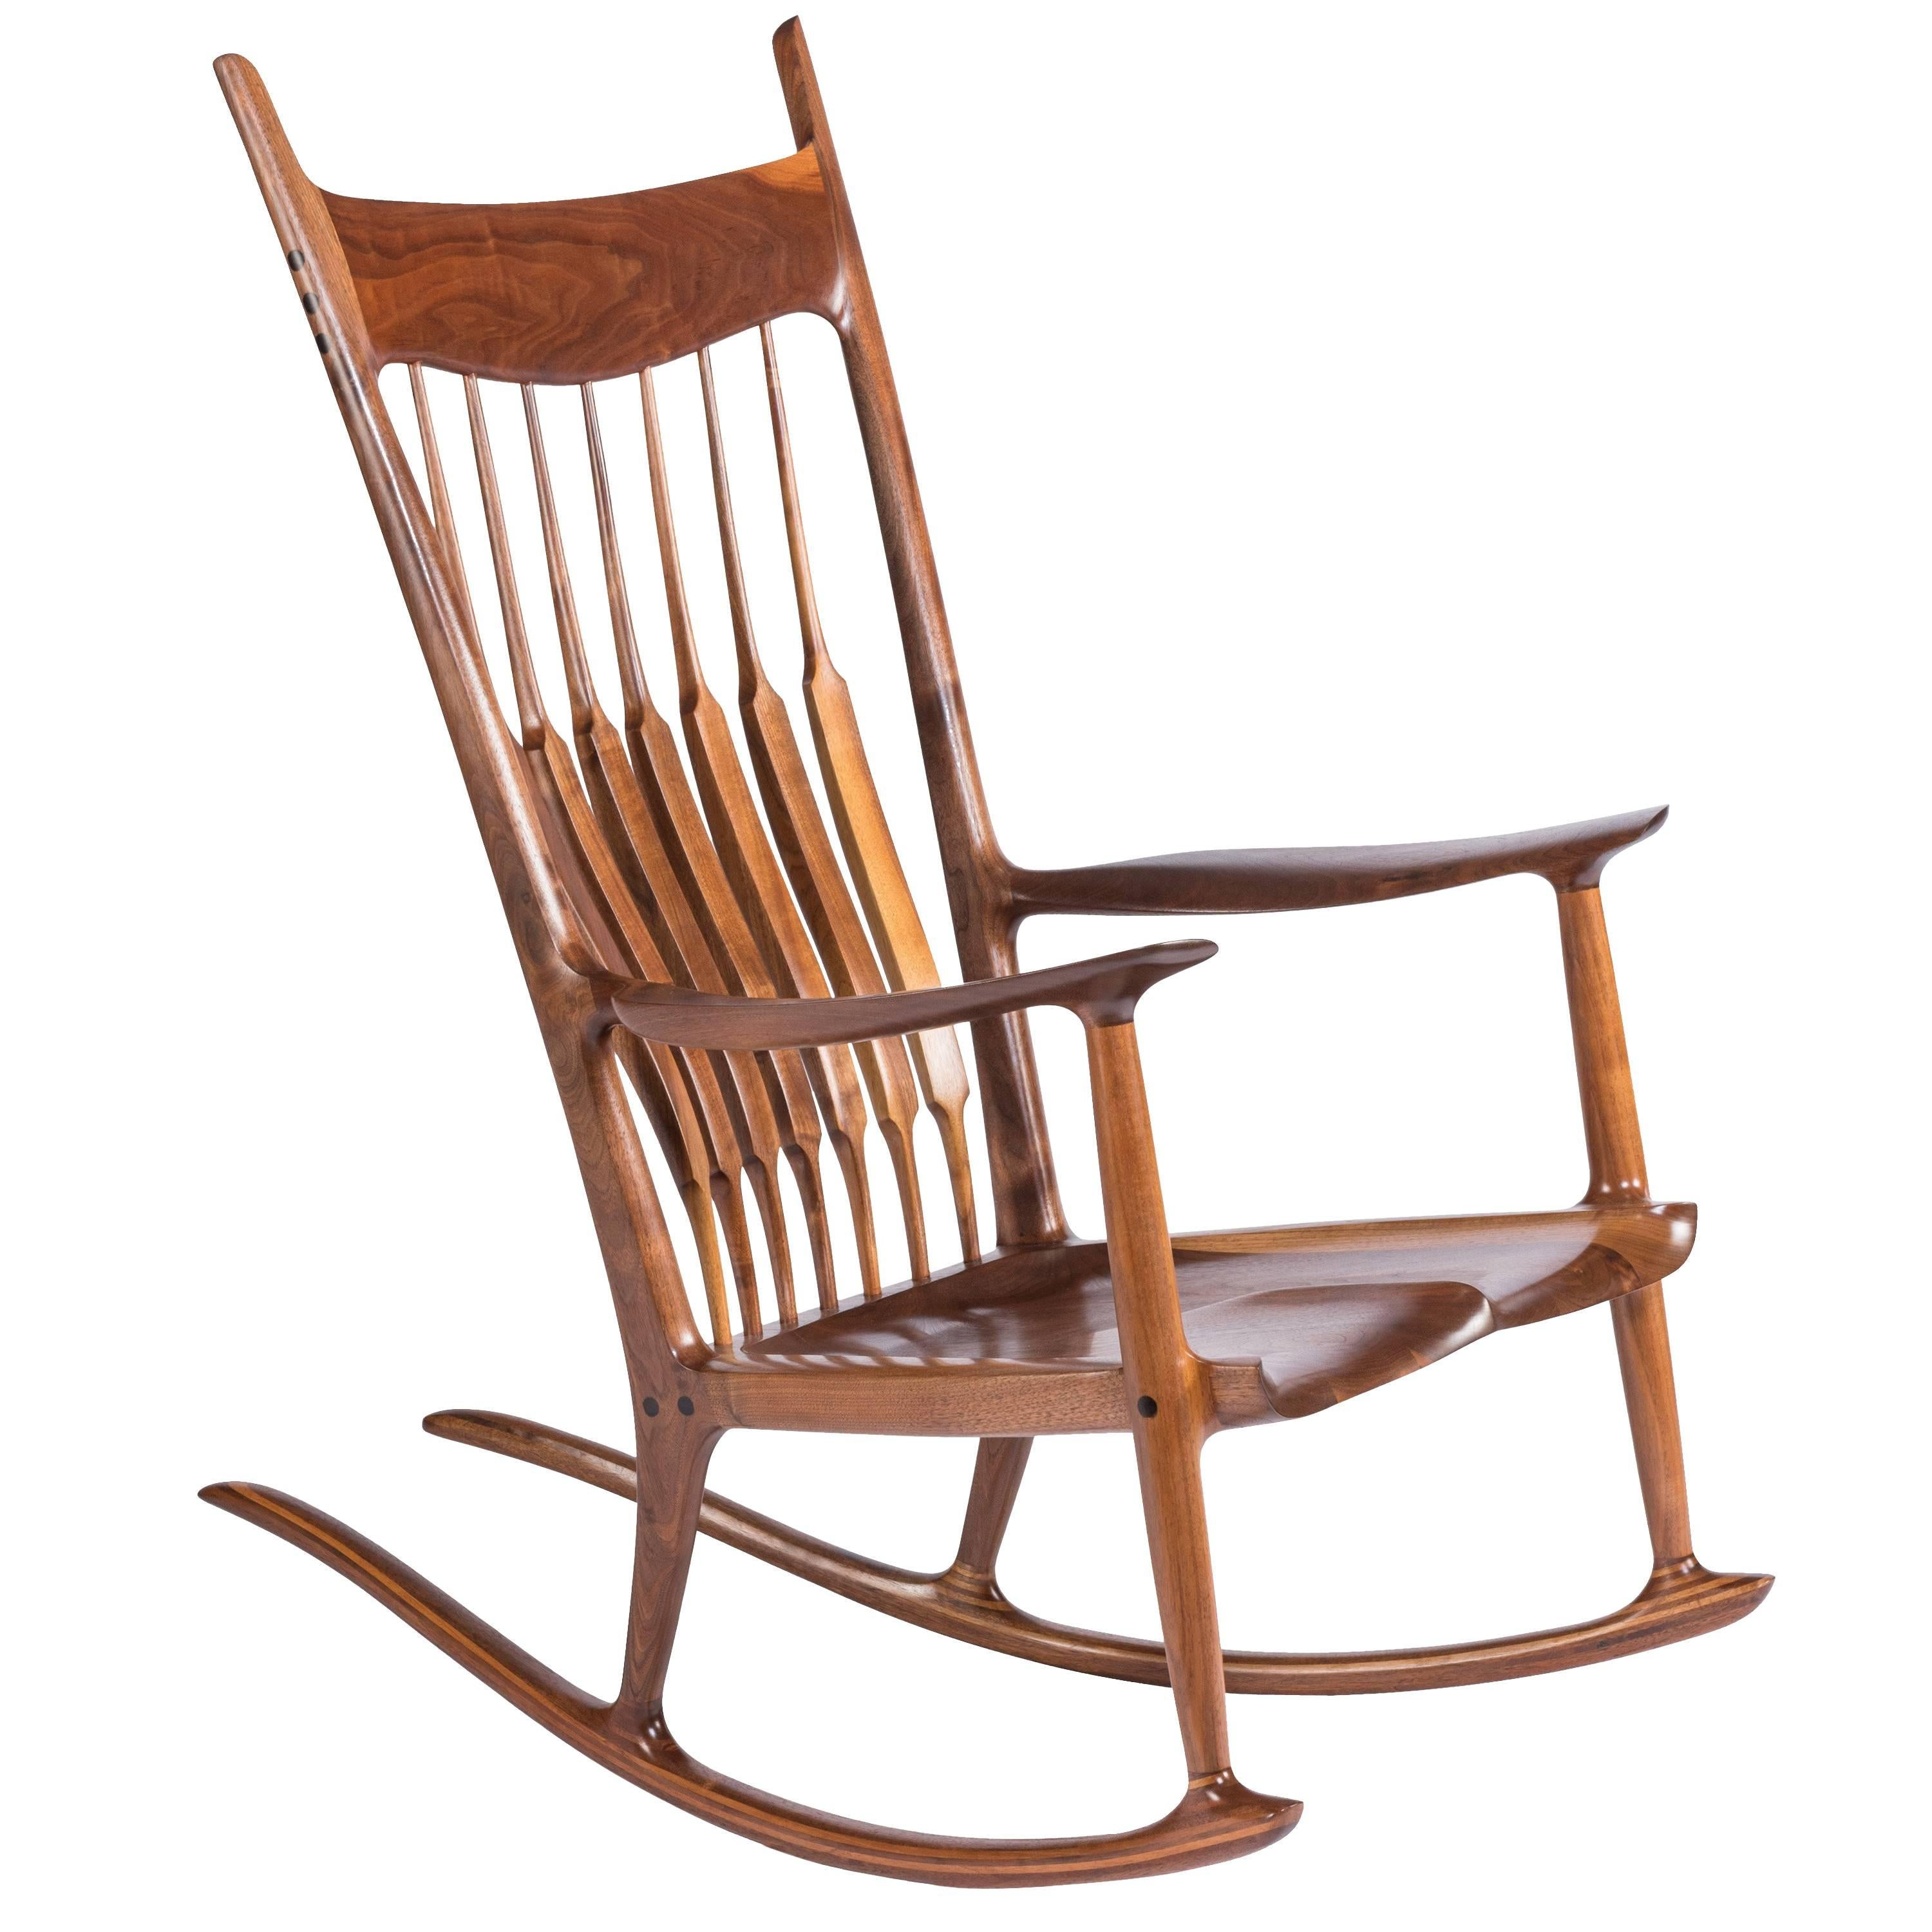 Maloof Rocker Plans